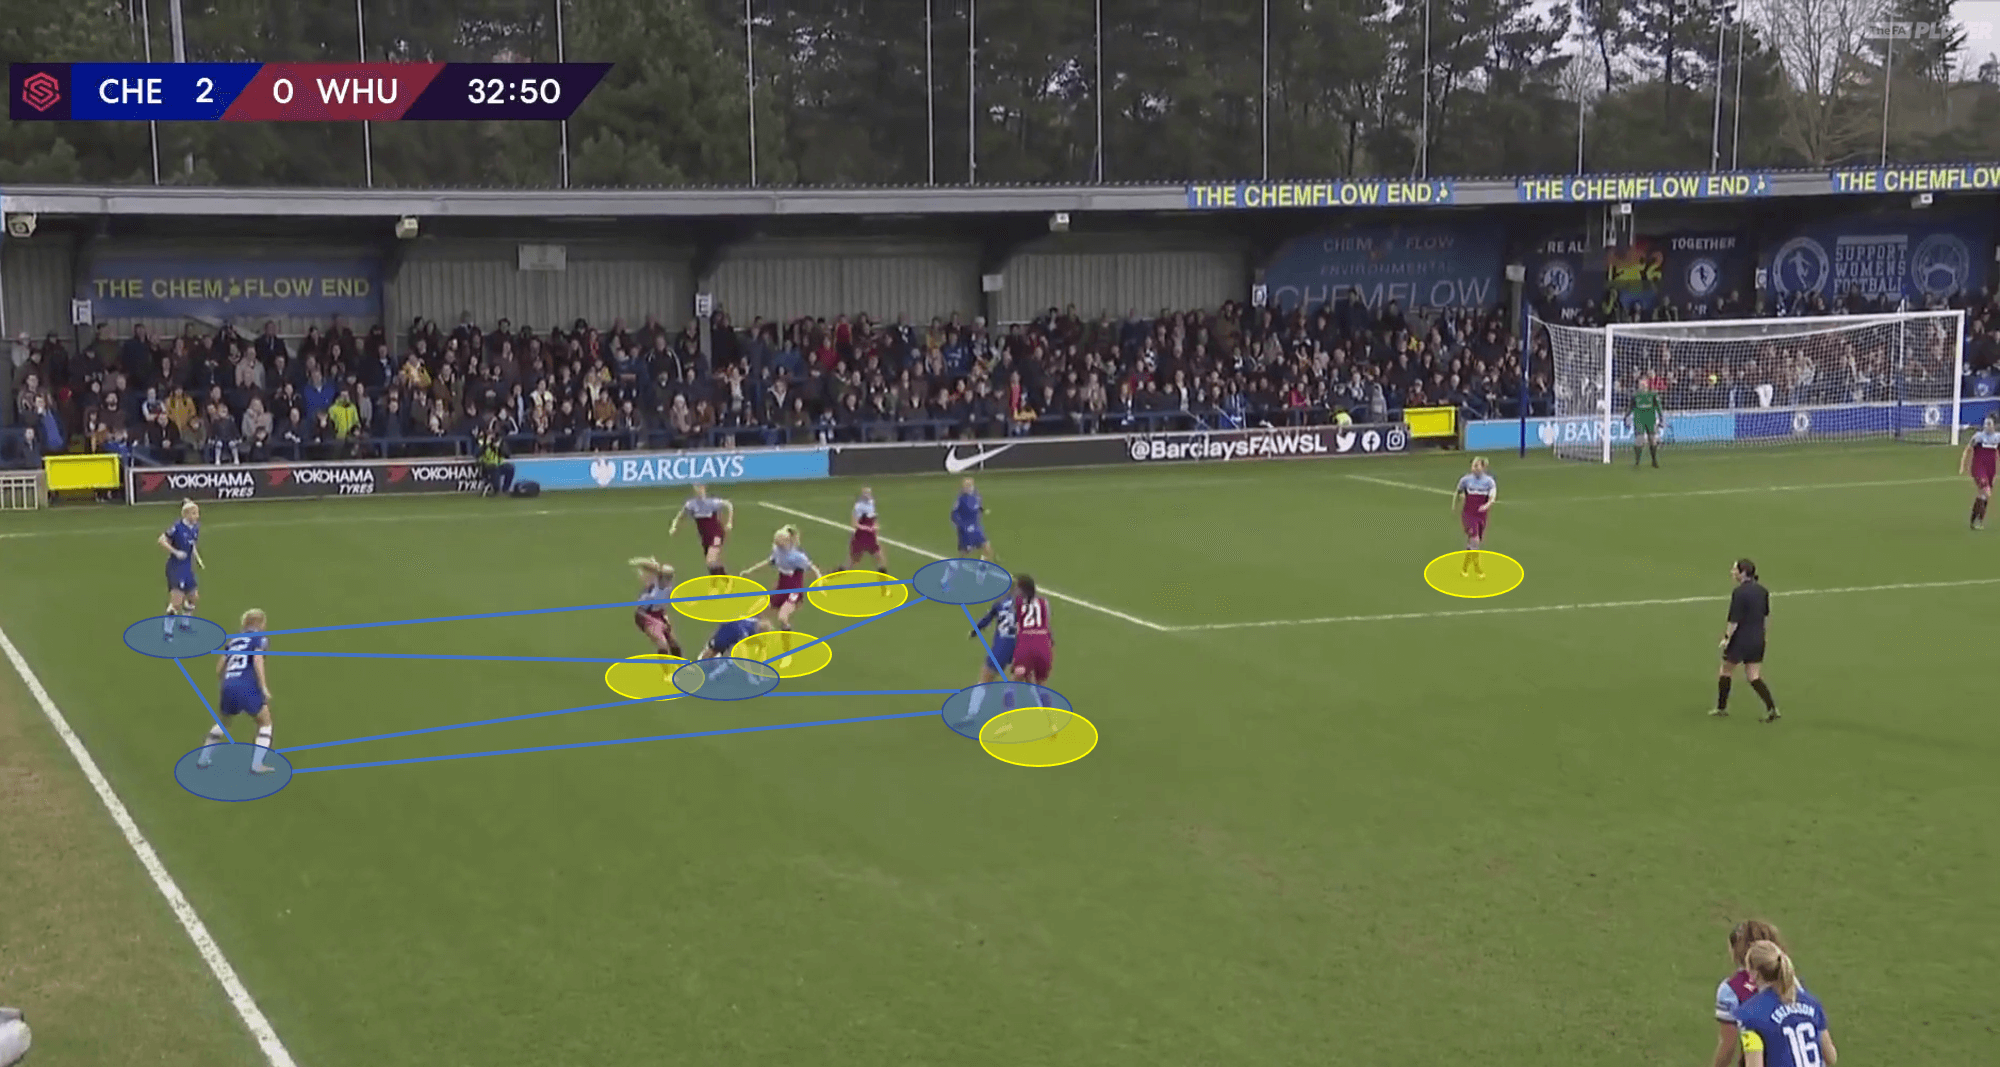 FAWSL 2019/20: Chelsea Women vs West Ham Women - tactical analysis tactics